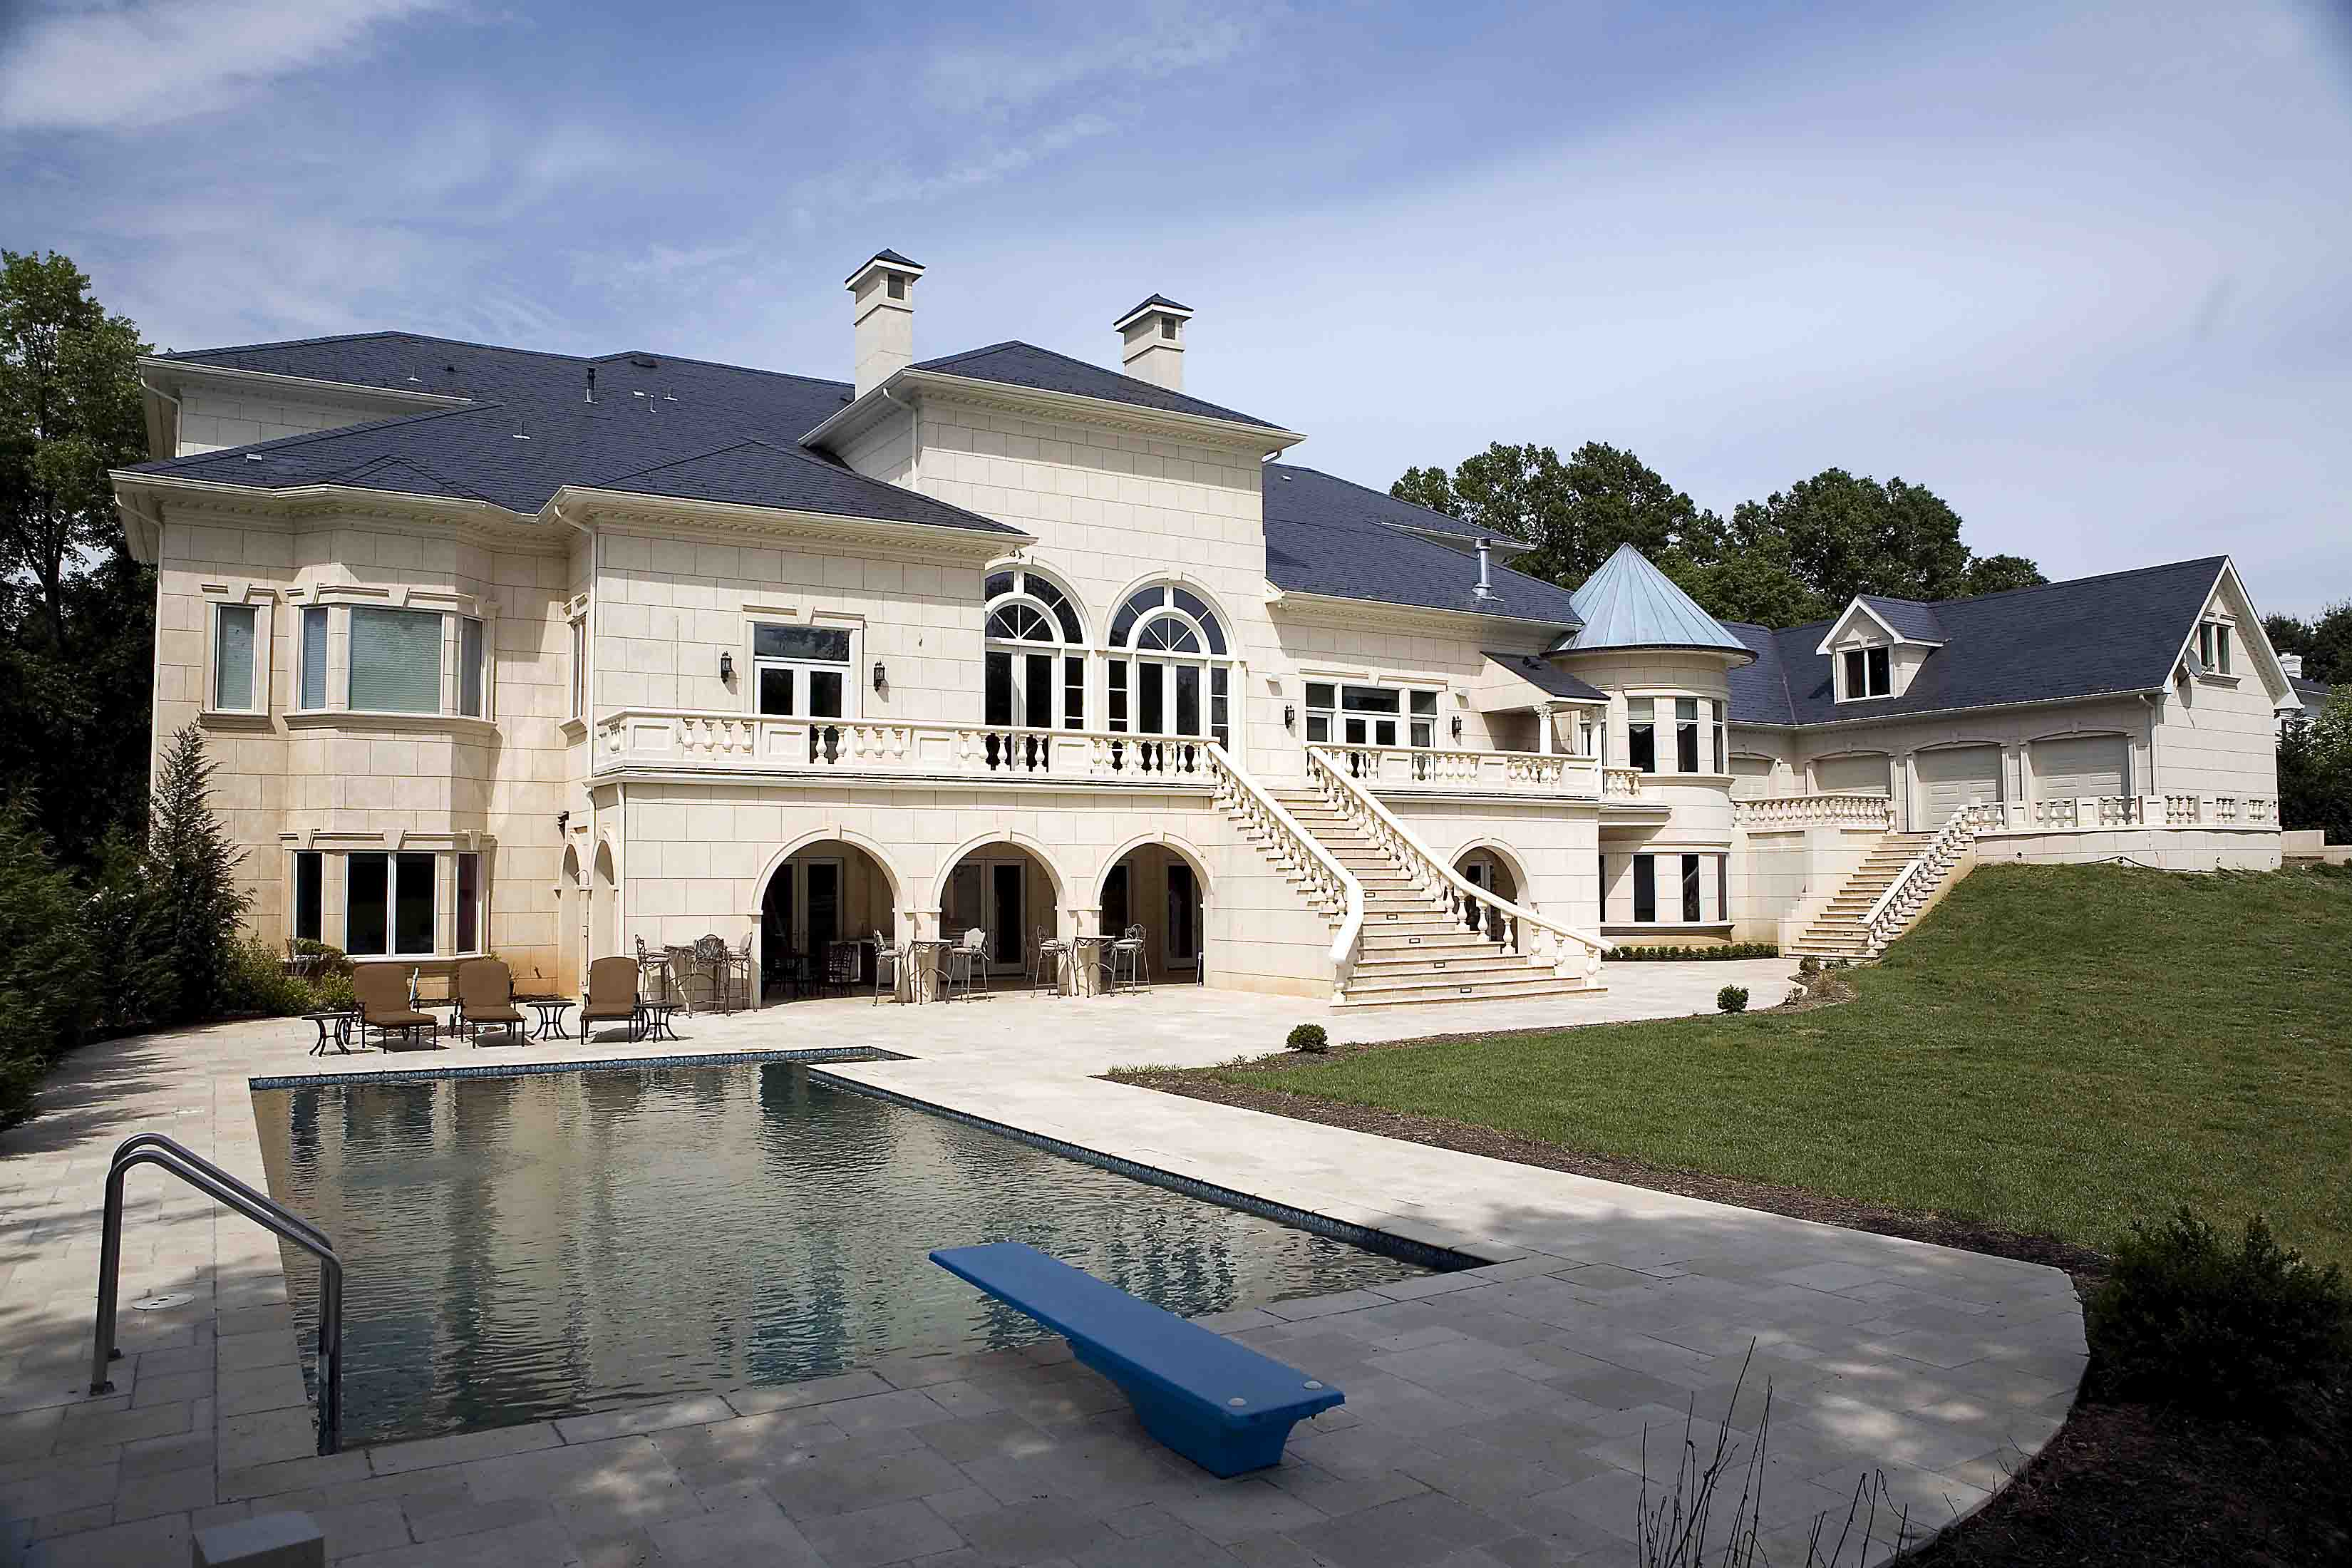 Salt water pool in the backyard of mansion in Potomac, Maryland